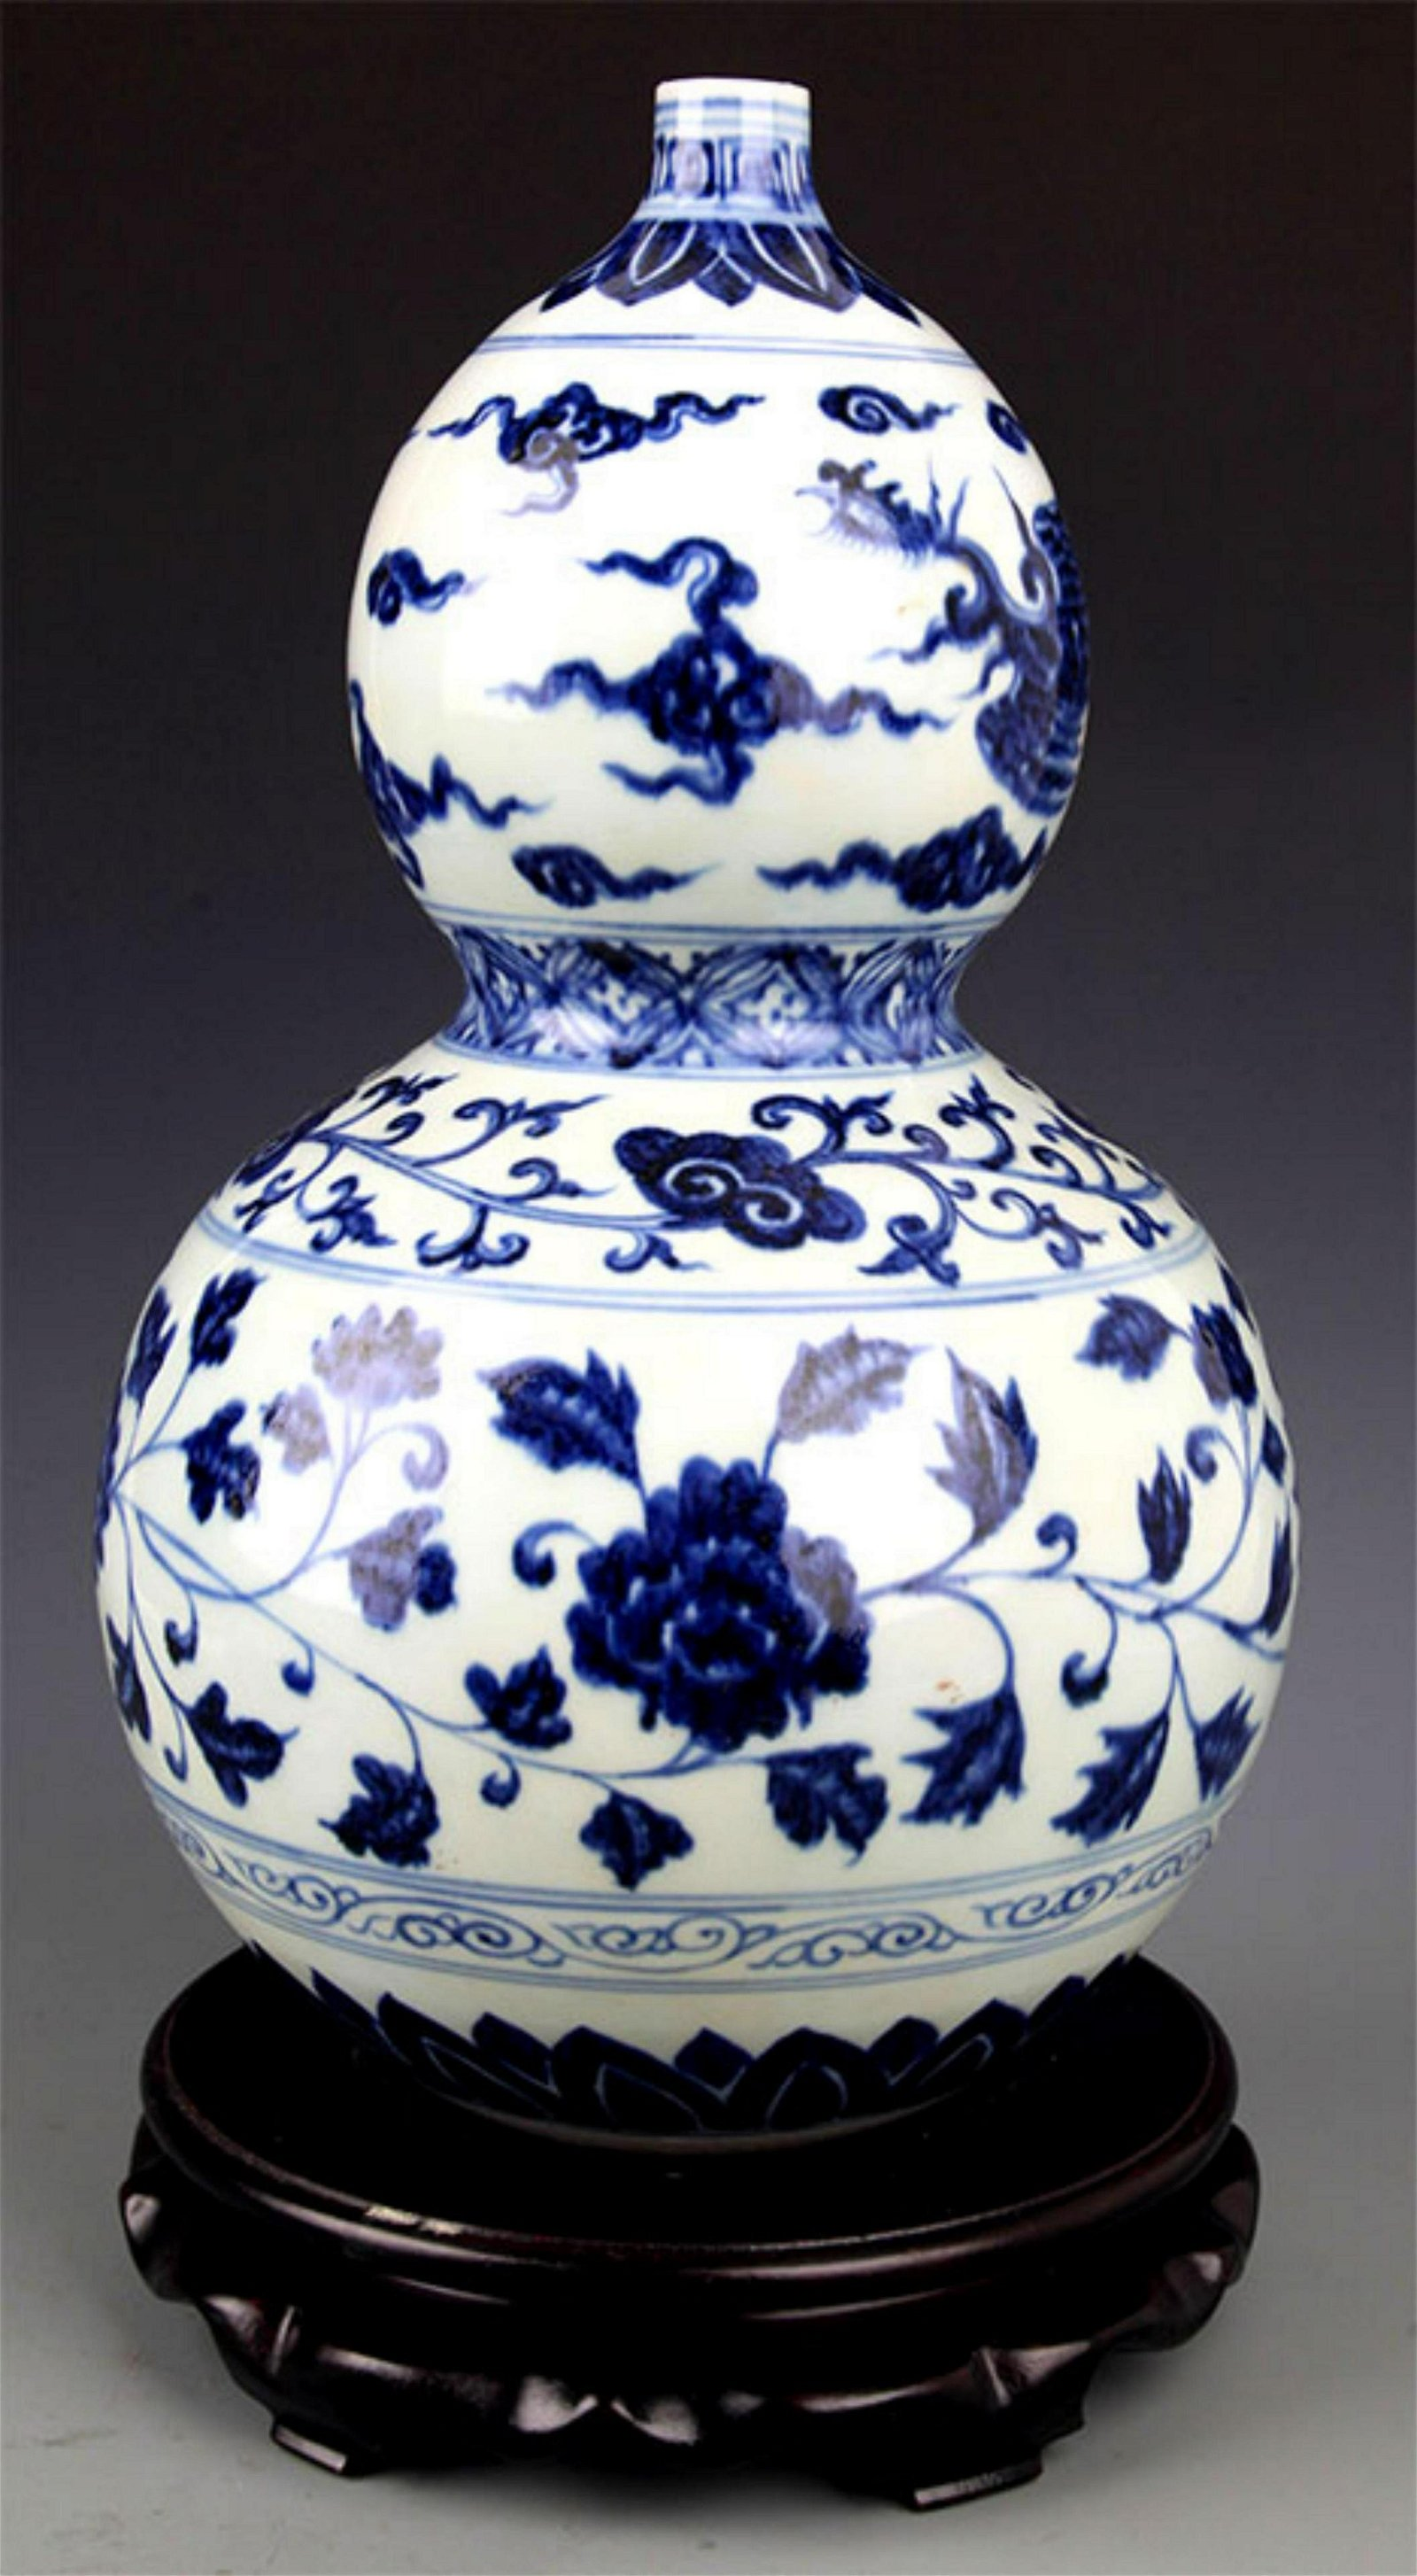 A FINE LARGE BLUE AND WHITE PORCELAIN GOURD BOTTLE